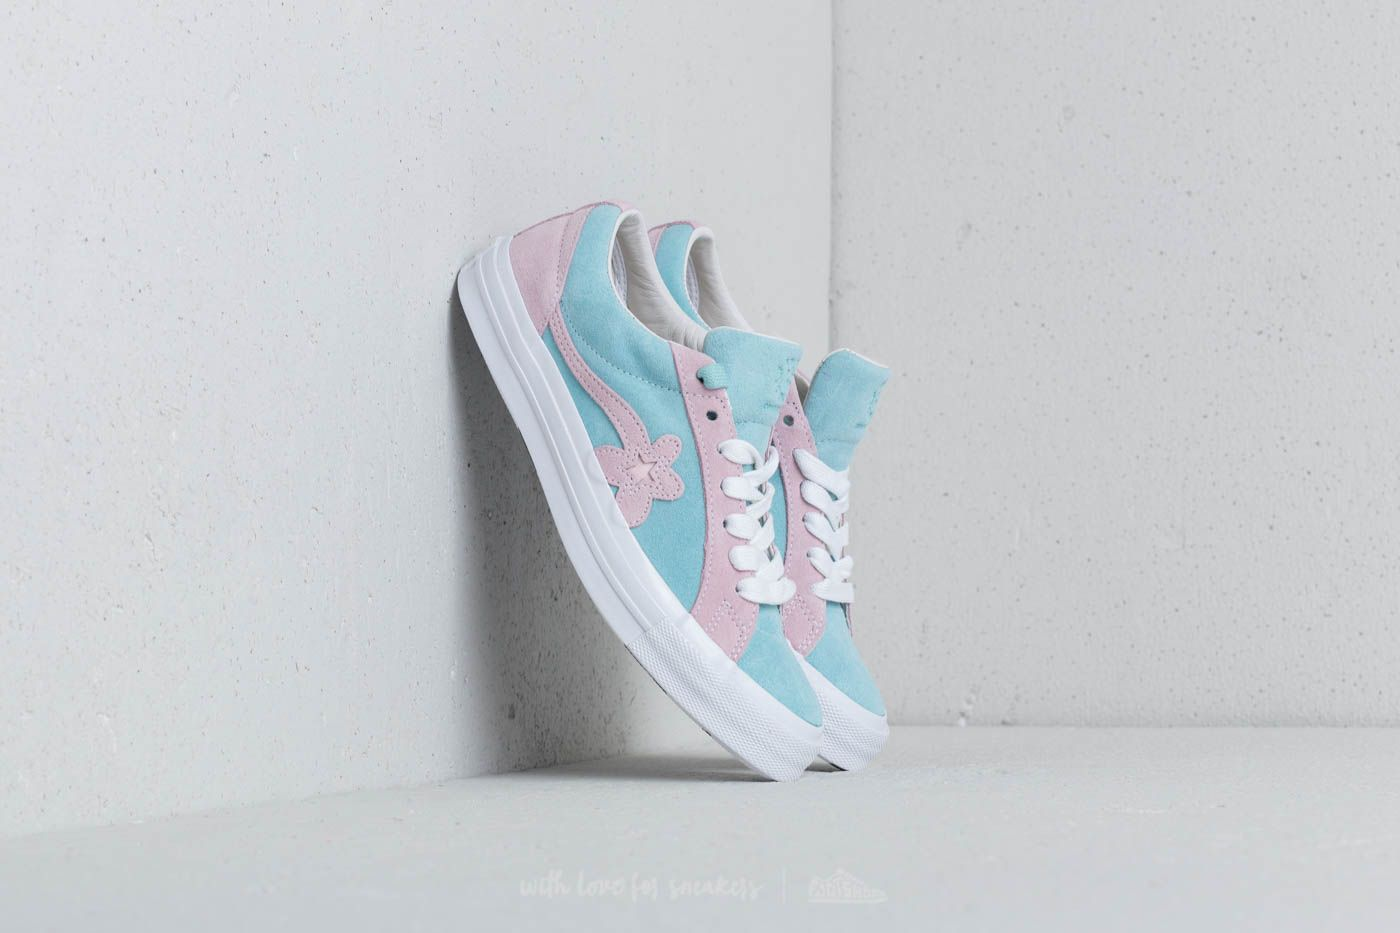 Converse x Tayler The Creator One Star Golf Le Fleur OX Plume Pink Marshmellow White   Footshop